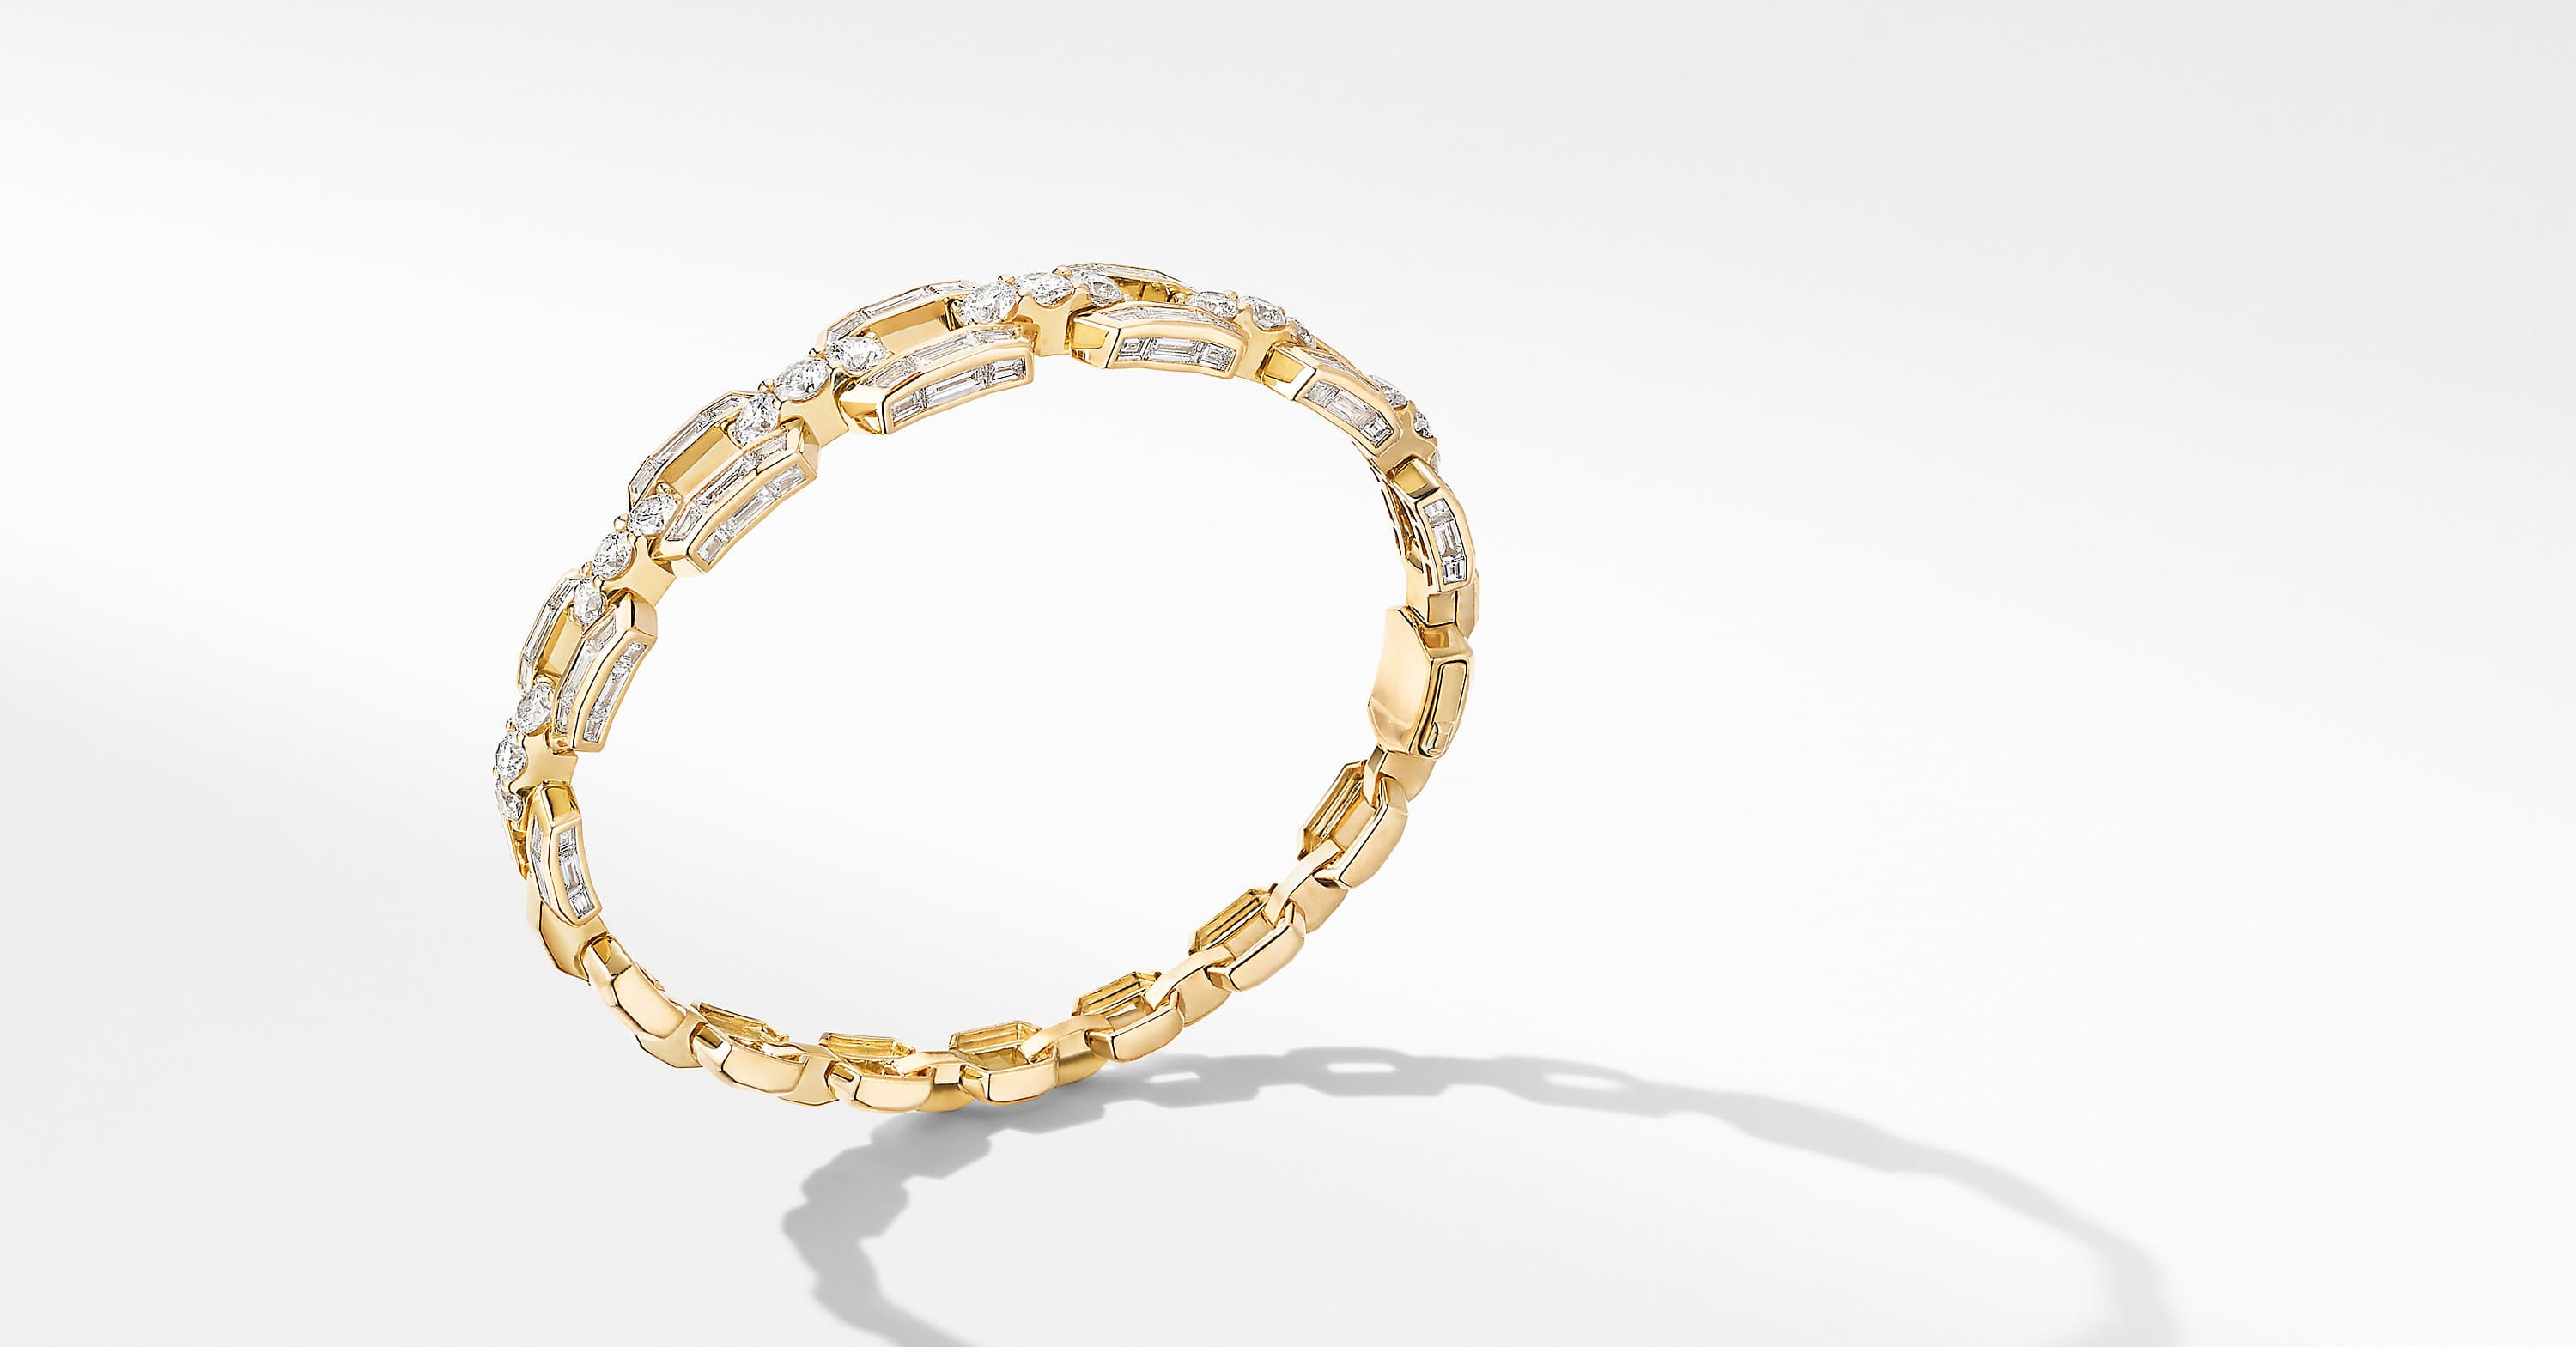 Stax Bangle Bracelet in Yellow Gold with Diamonds